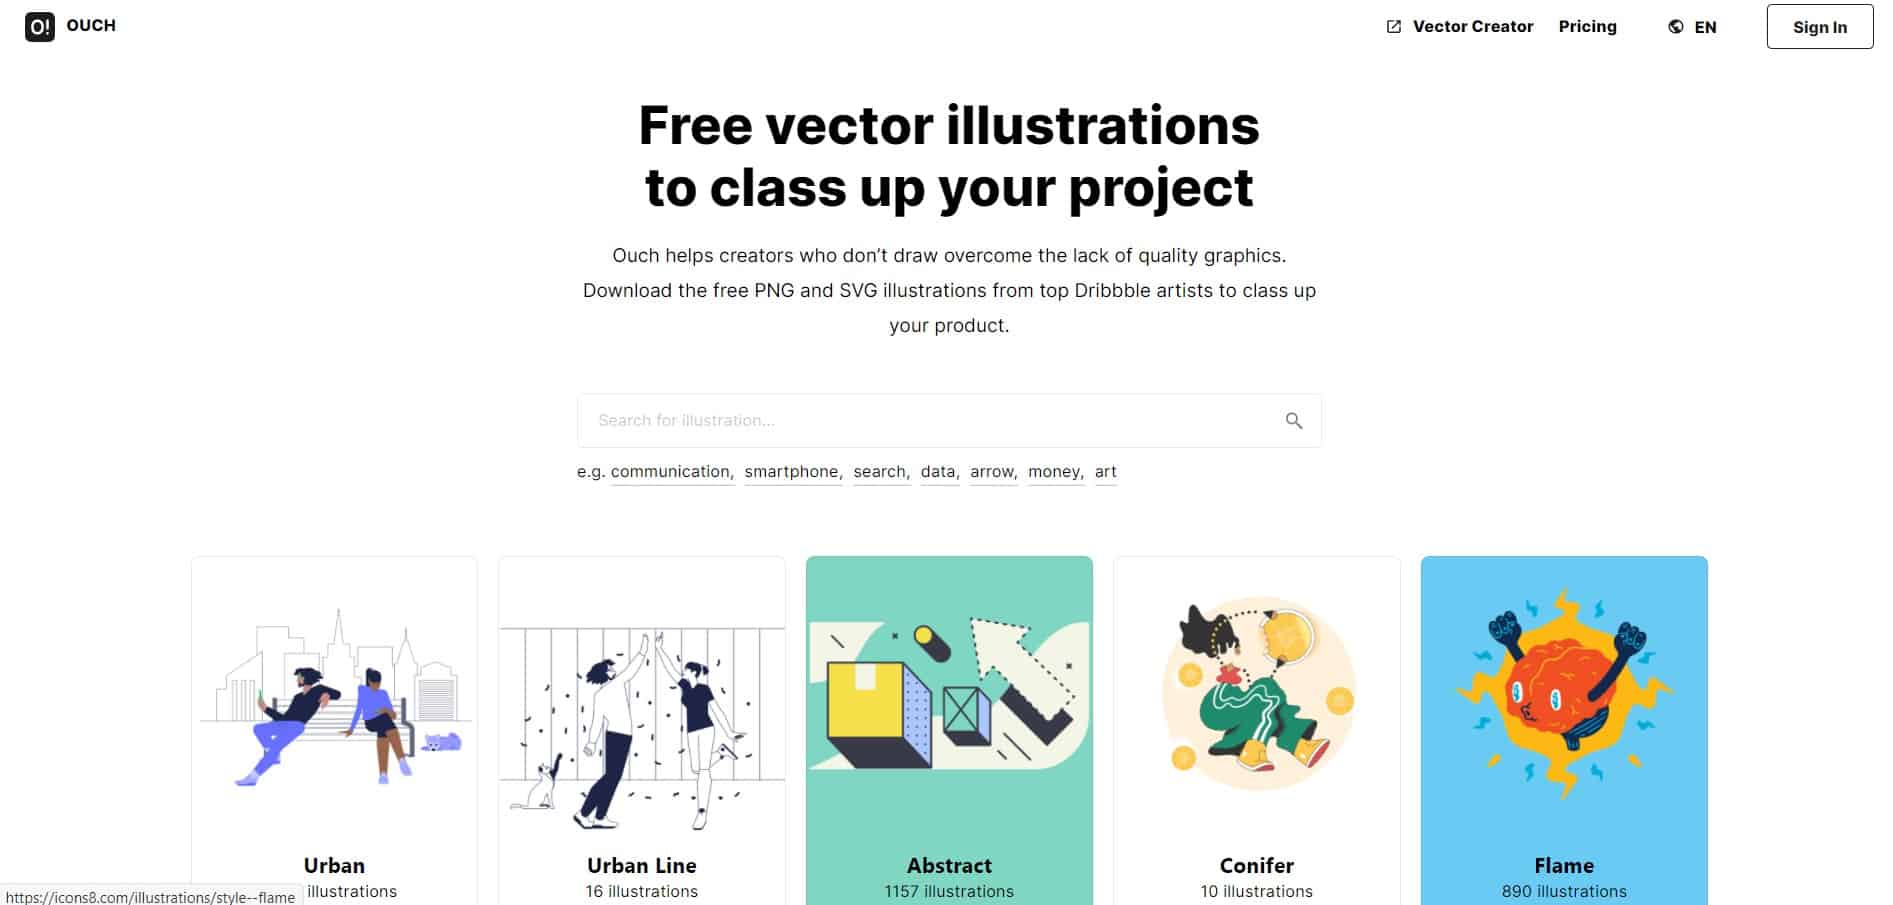 Ouch!: Free vector illustrations to class up your project